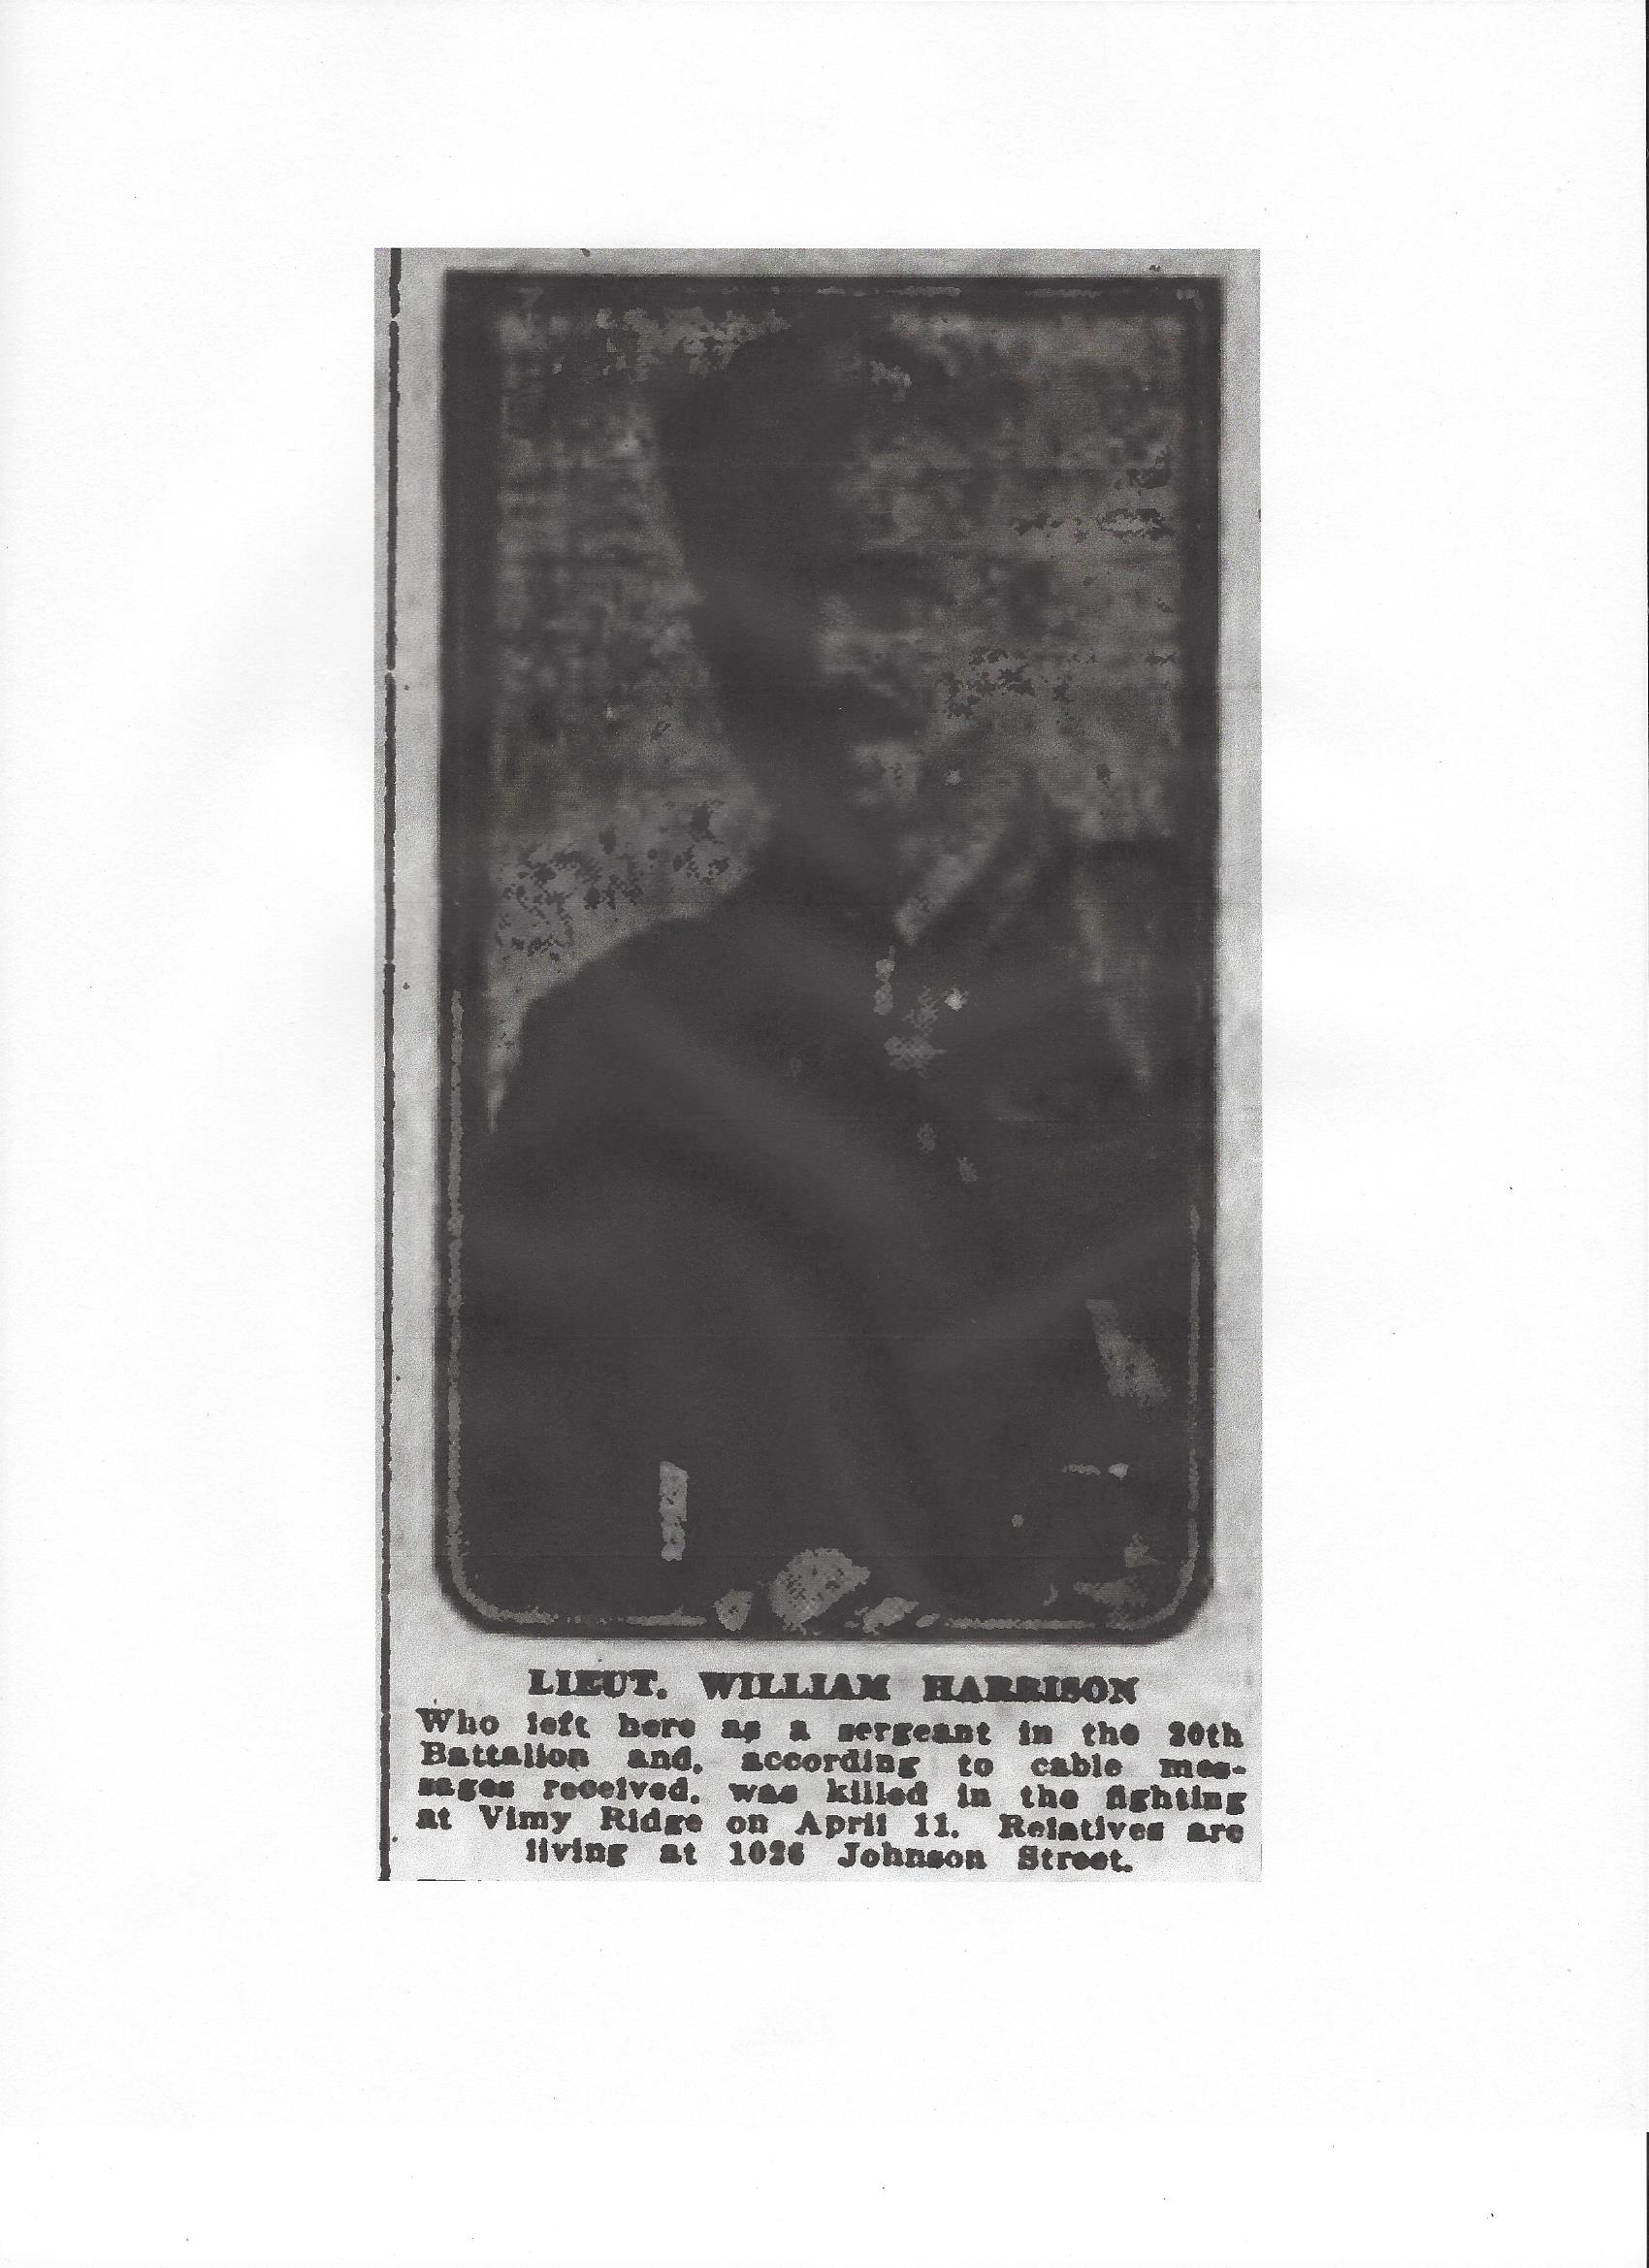 Newspaper Clipping – From the Daily Colonist of April 22, 1917. Image taken from web address of http://archive.org/stream/dailycolonist59y115uvic#page/n0/mode/1up